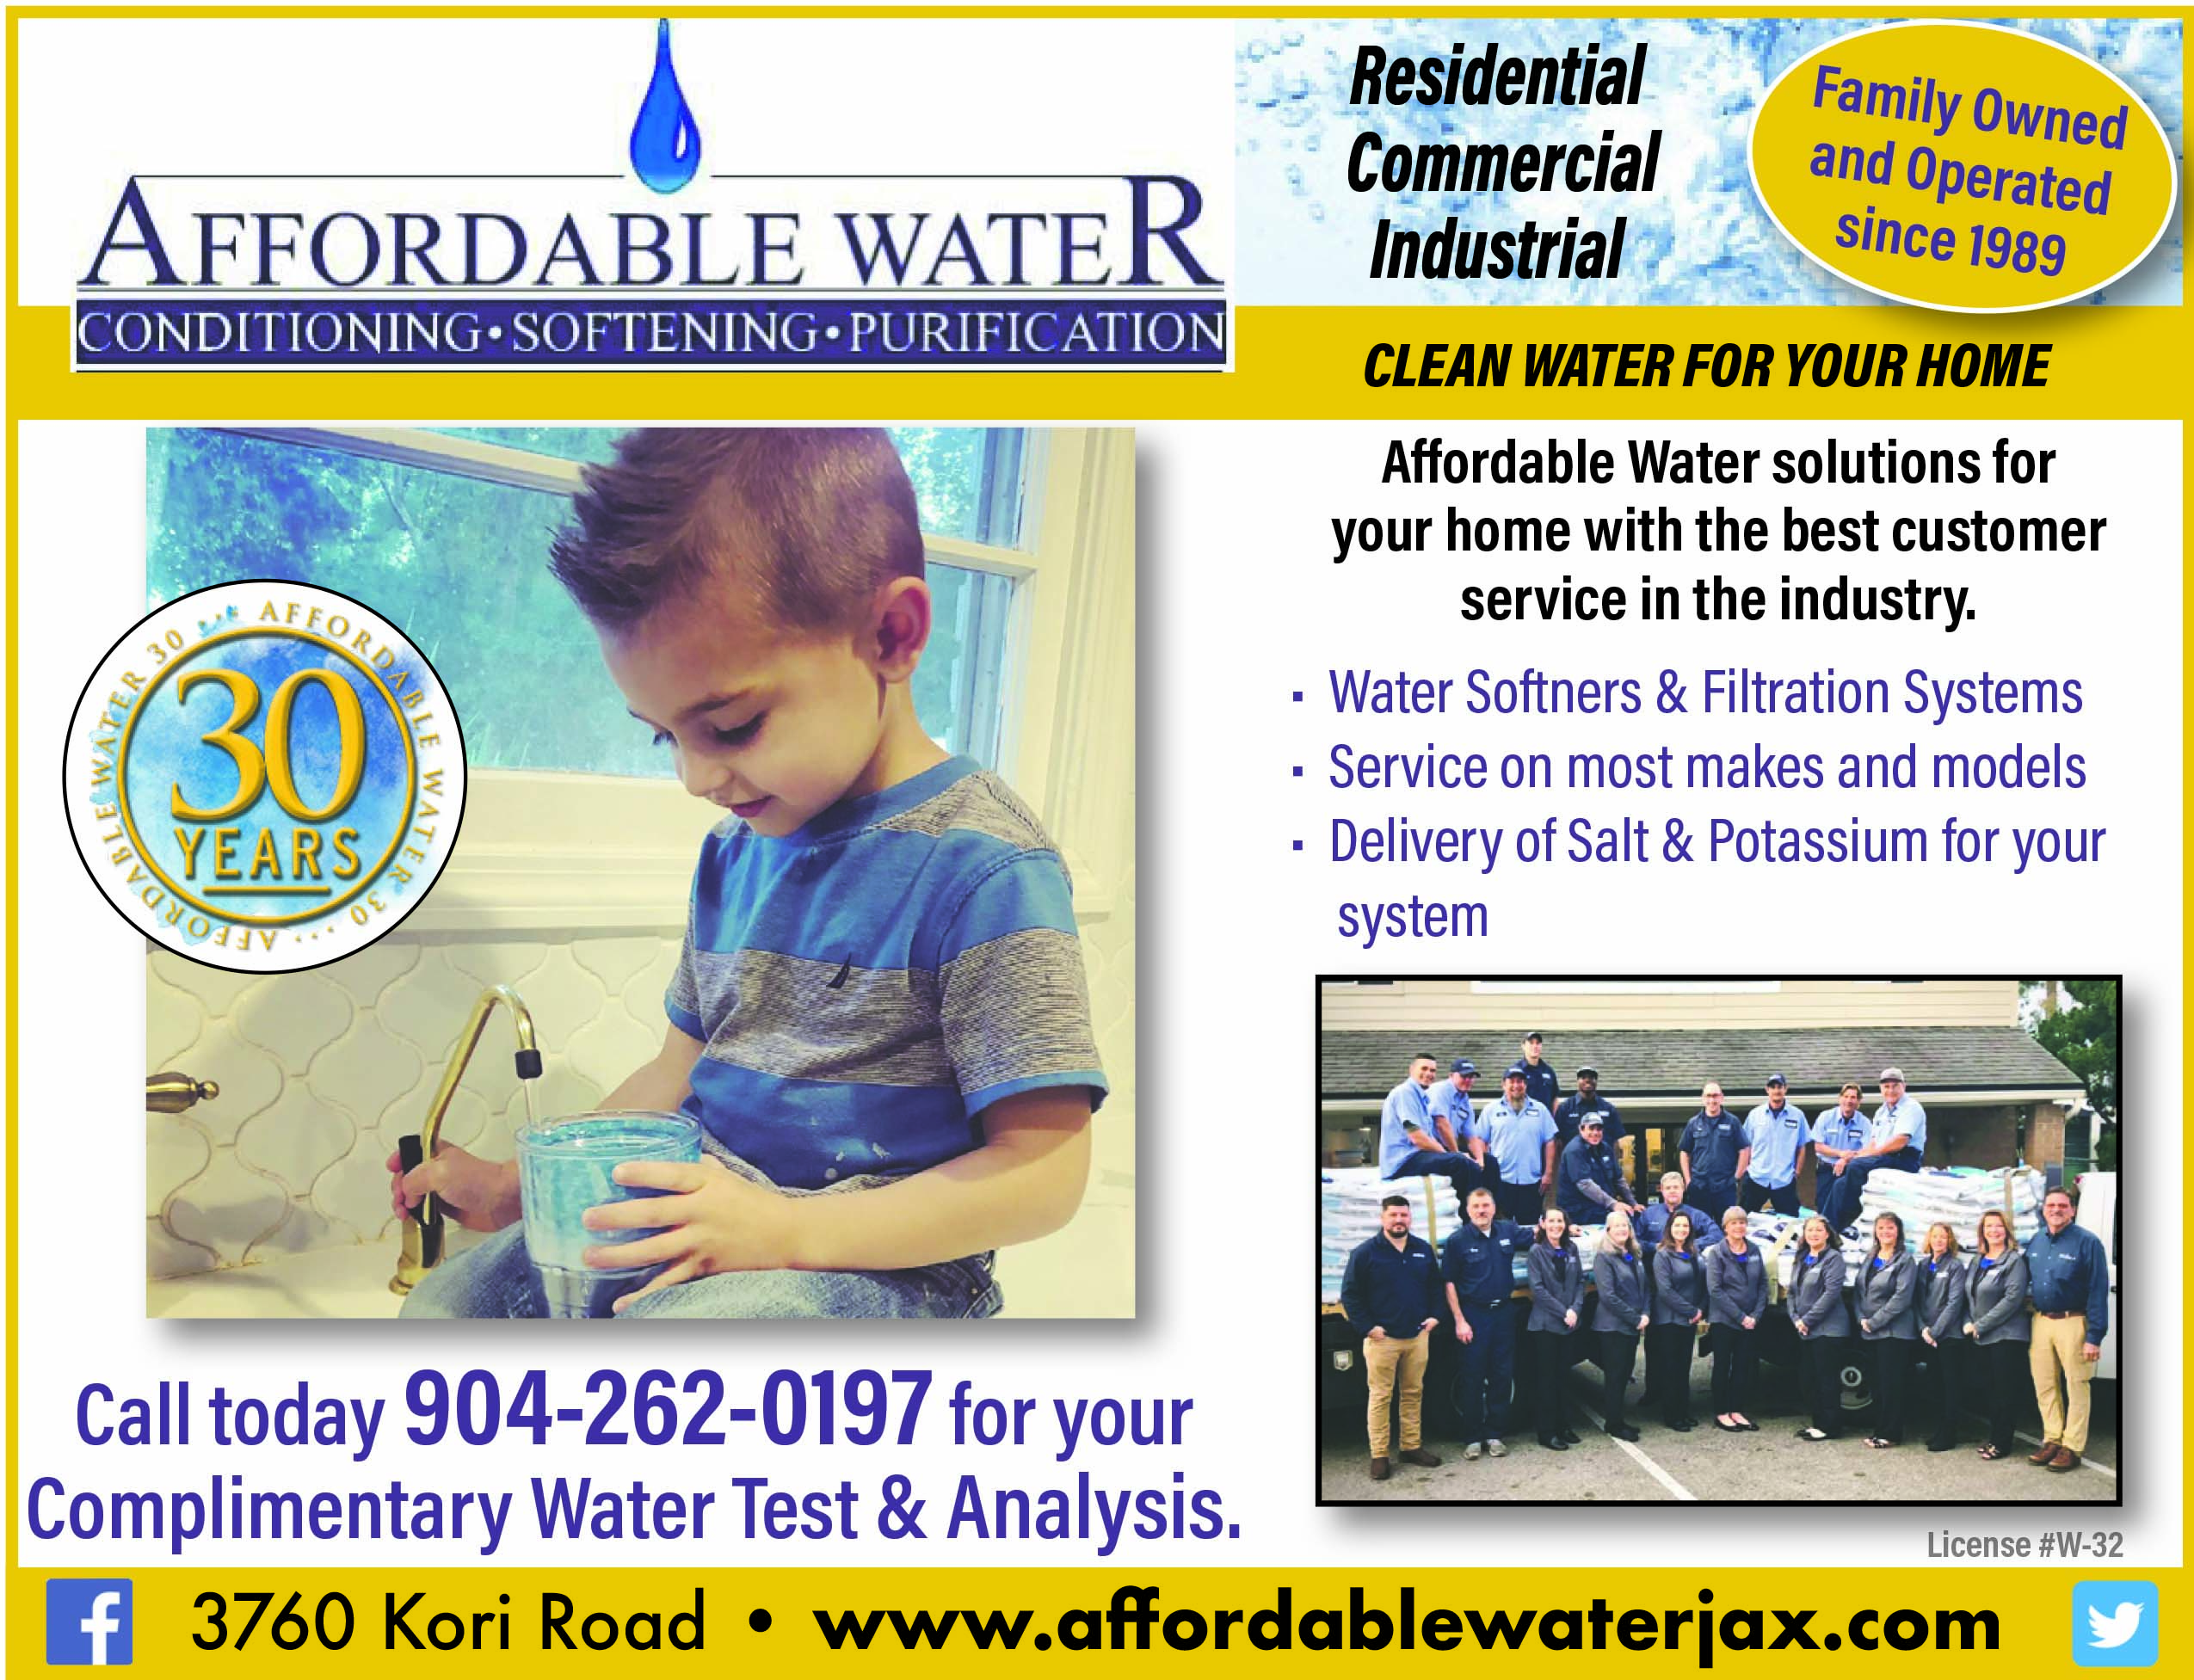 Affordable Water - Conditioning, softening, purification! Residential commercial industrial. Family owned and operated since 1989. Call today for your complimentary water test and analysis 904 262 0197